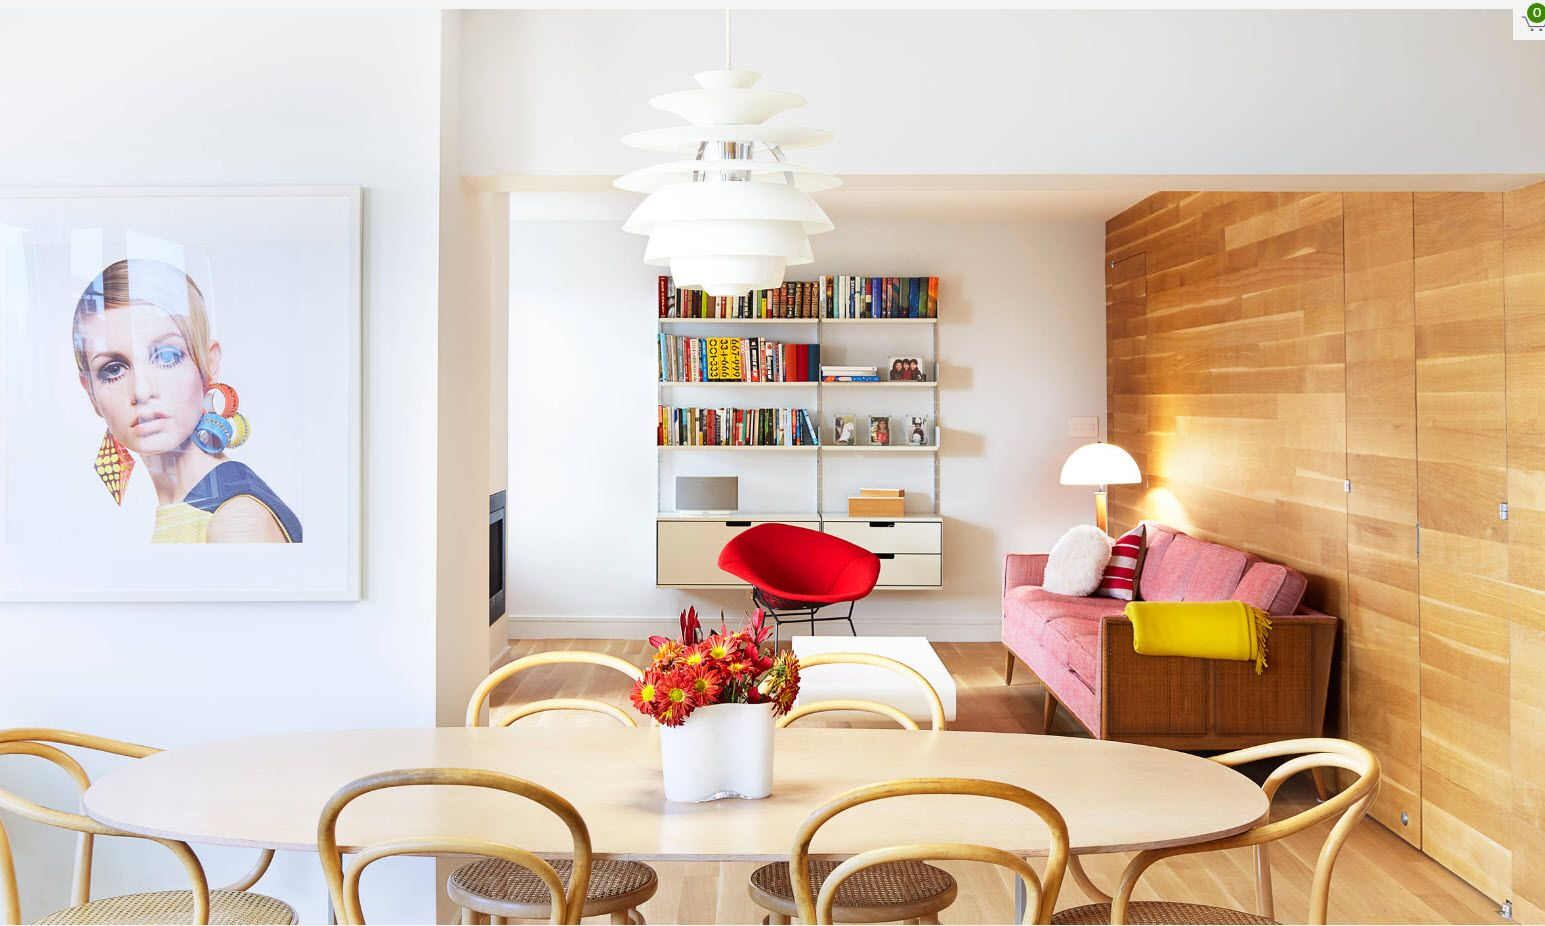 Apartment Interior Design Inspiration Ideas & Trends 2017. bright red upholstered chair as an accent of the dining room